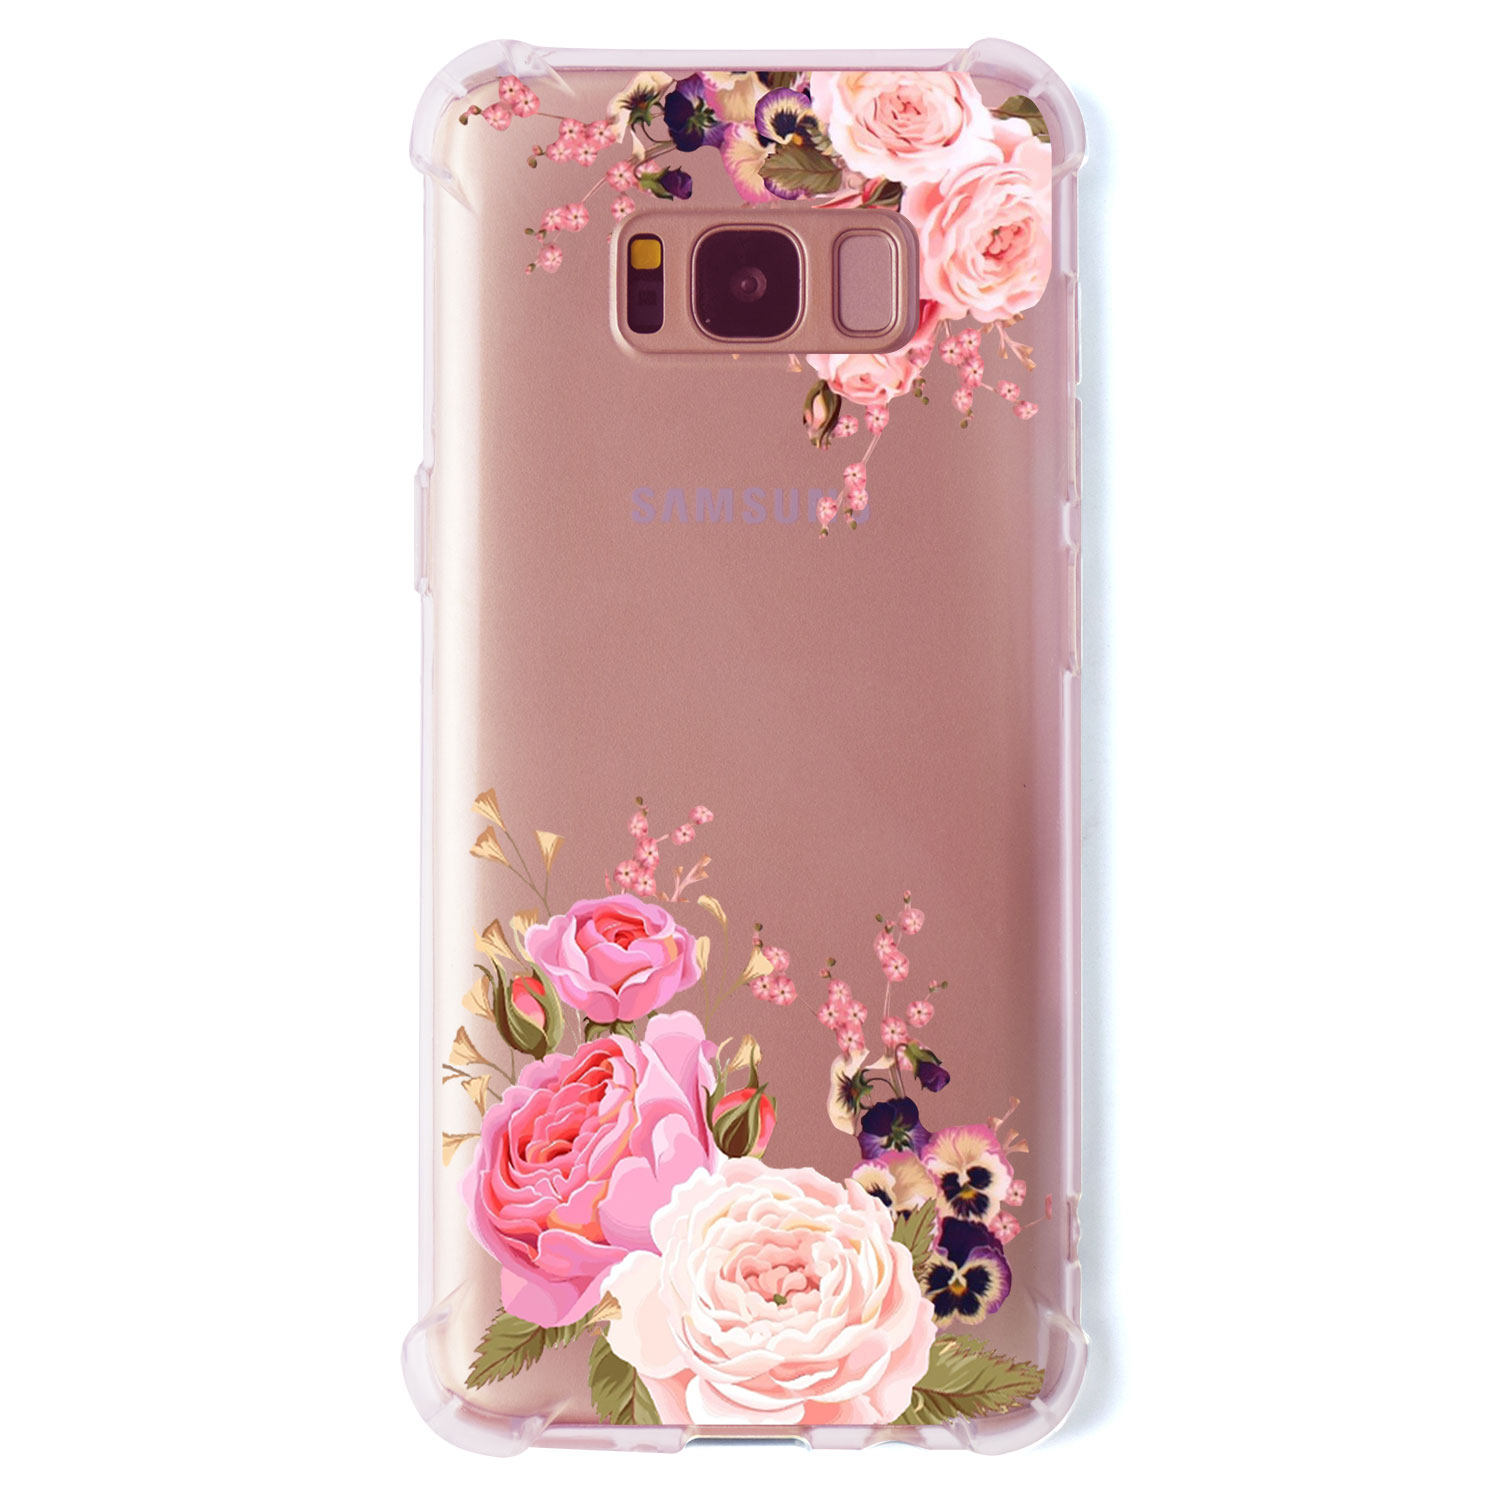 Hybrid Tough Floral Shockproof Tpu Bumper Case Cover For Samsung Asoftcase S8 Plus Galaxy Soft Rubber